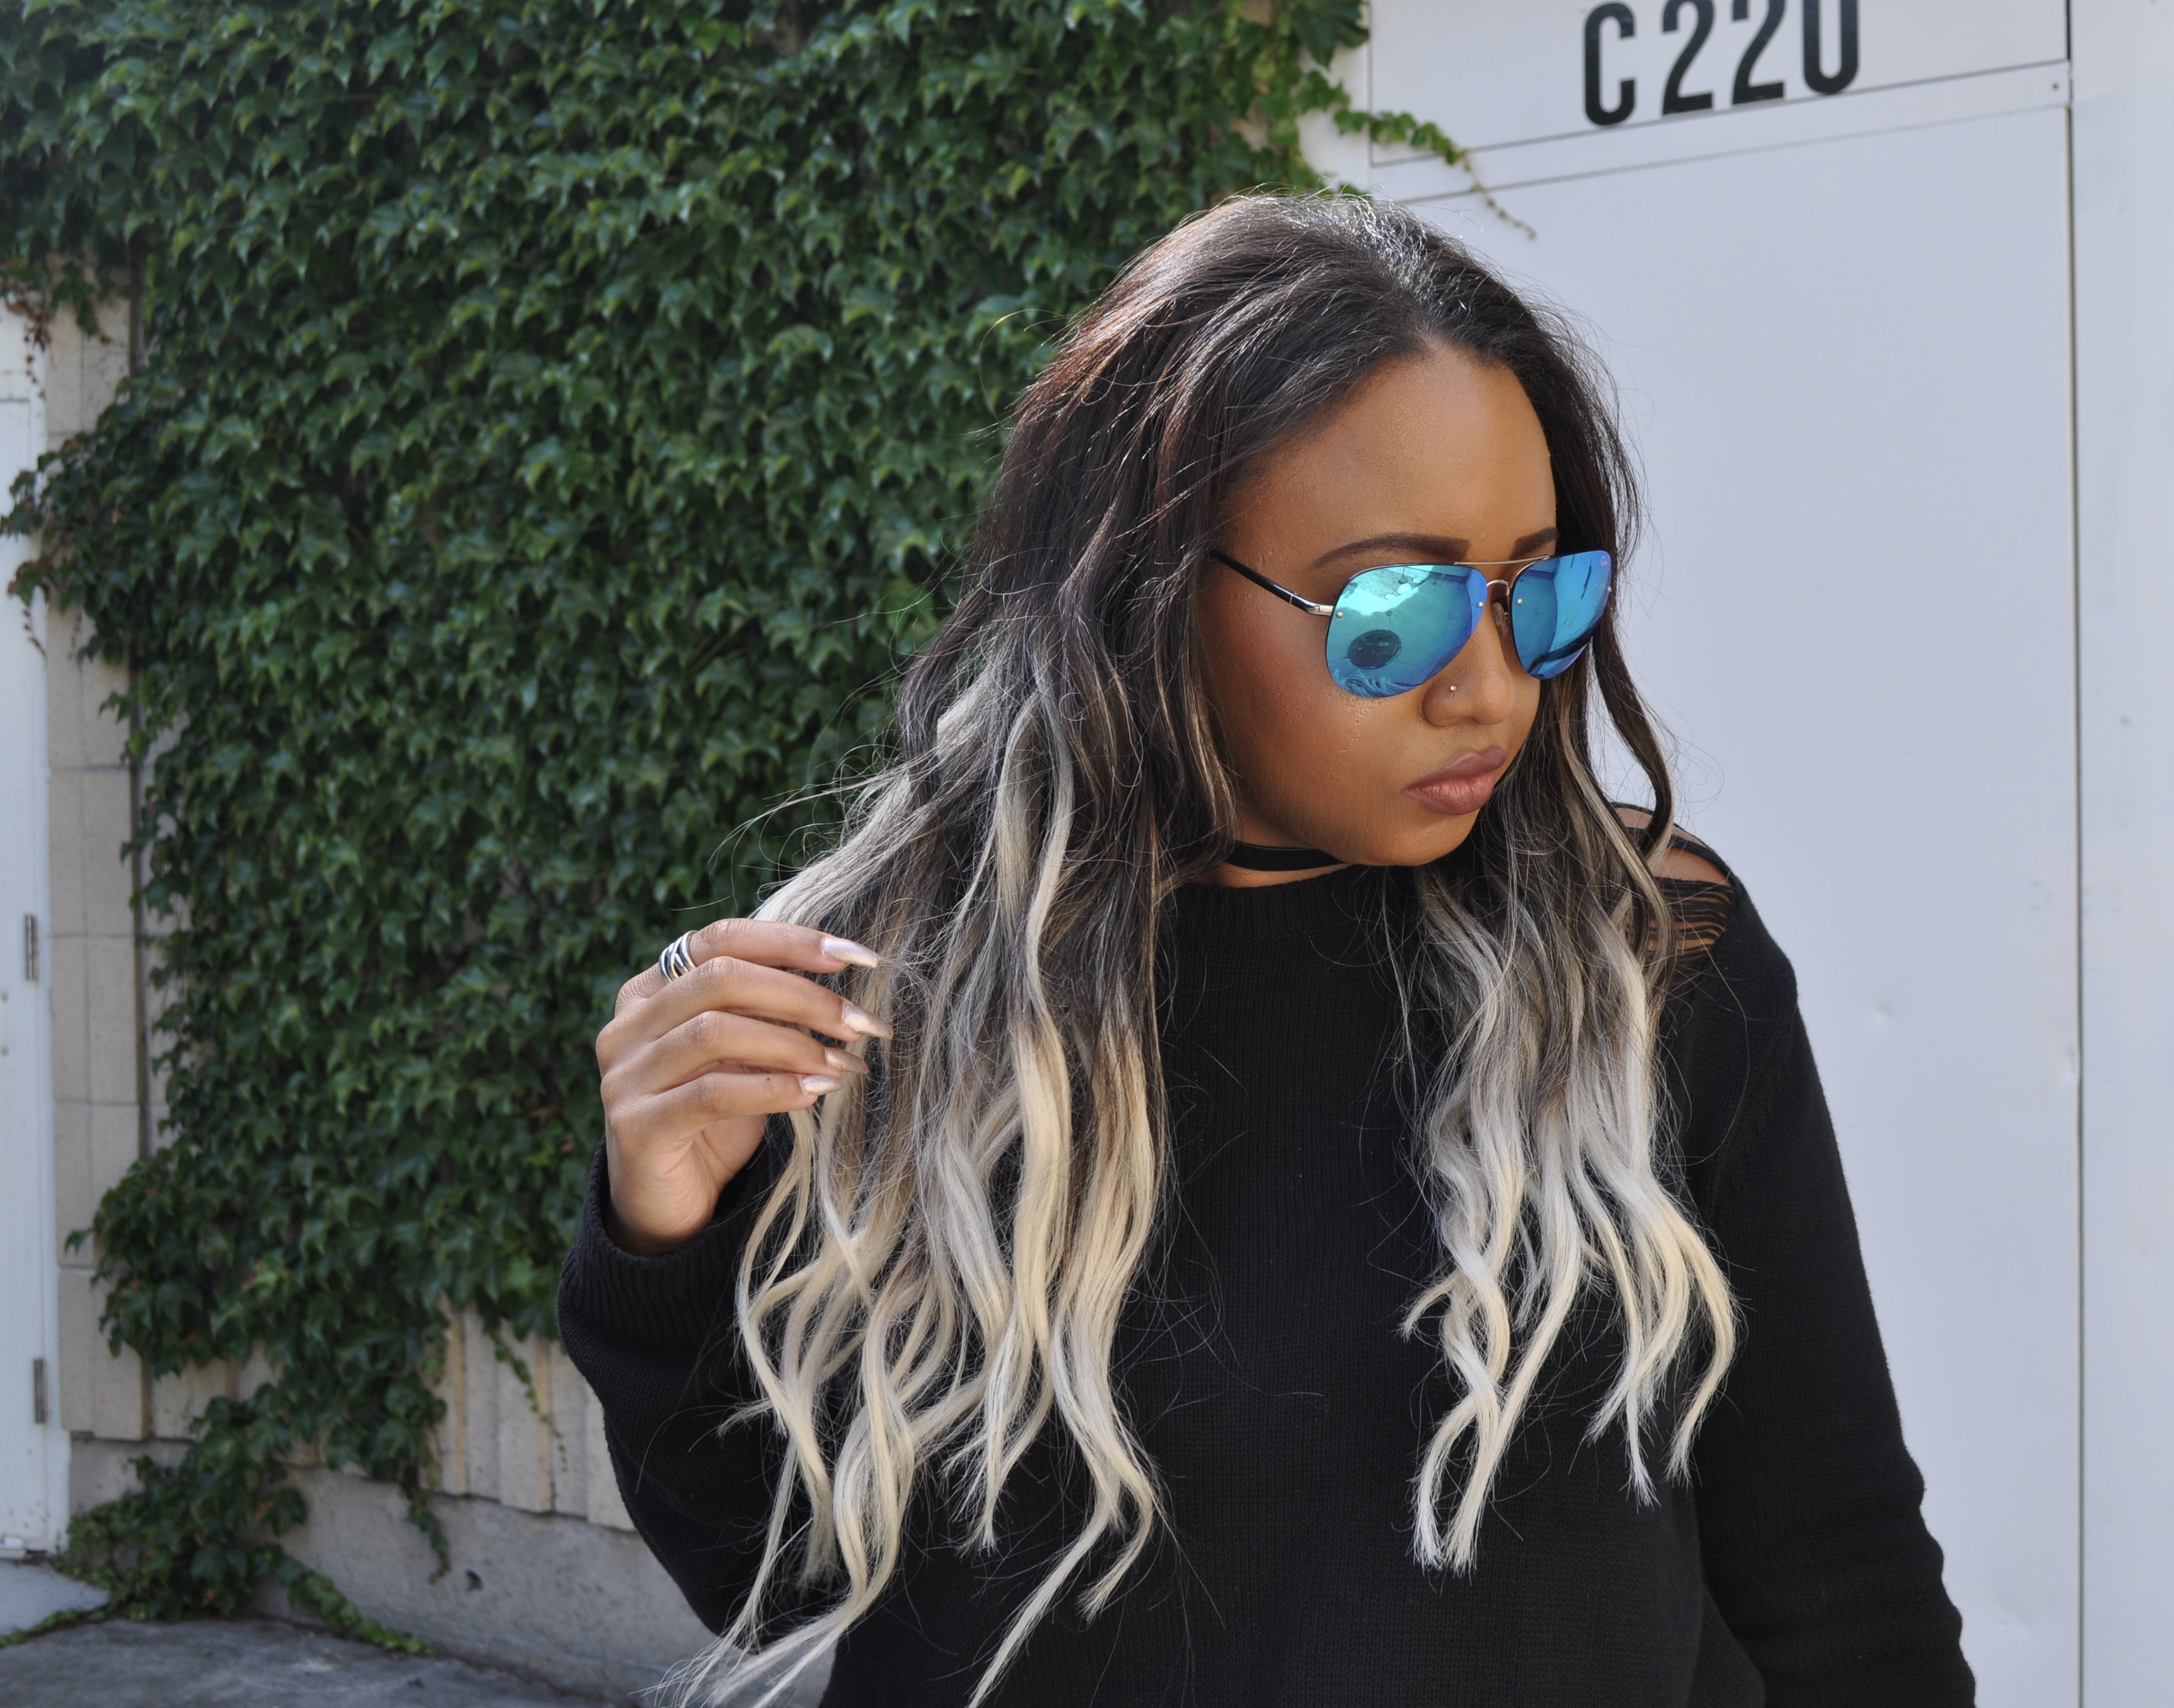 Bellami clip in hair extensions ombre 2 platinum review the finally i can share my true thoughts on my bellami clip in hair extensions in 2platinum ombre 160g in 20 inches my favorite color thus far pmusecretfo Image collections